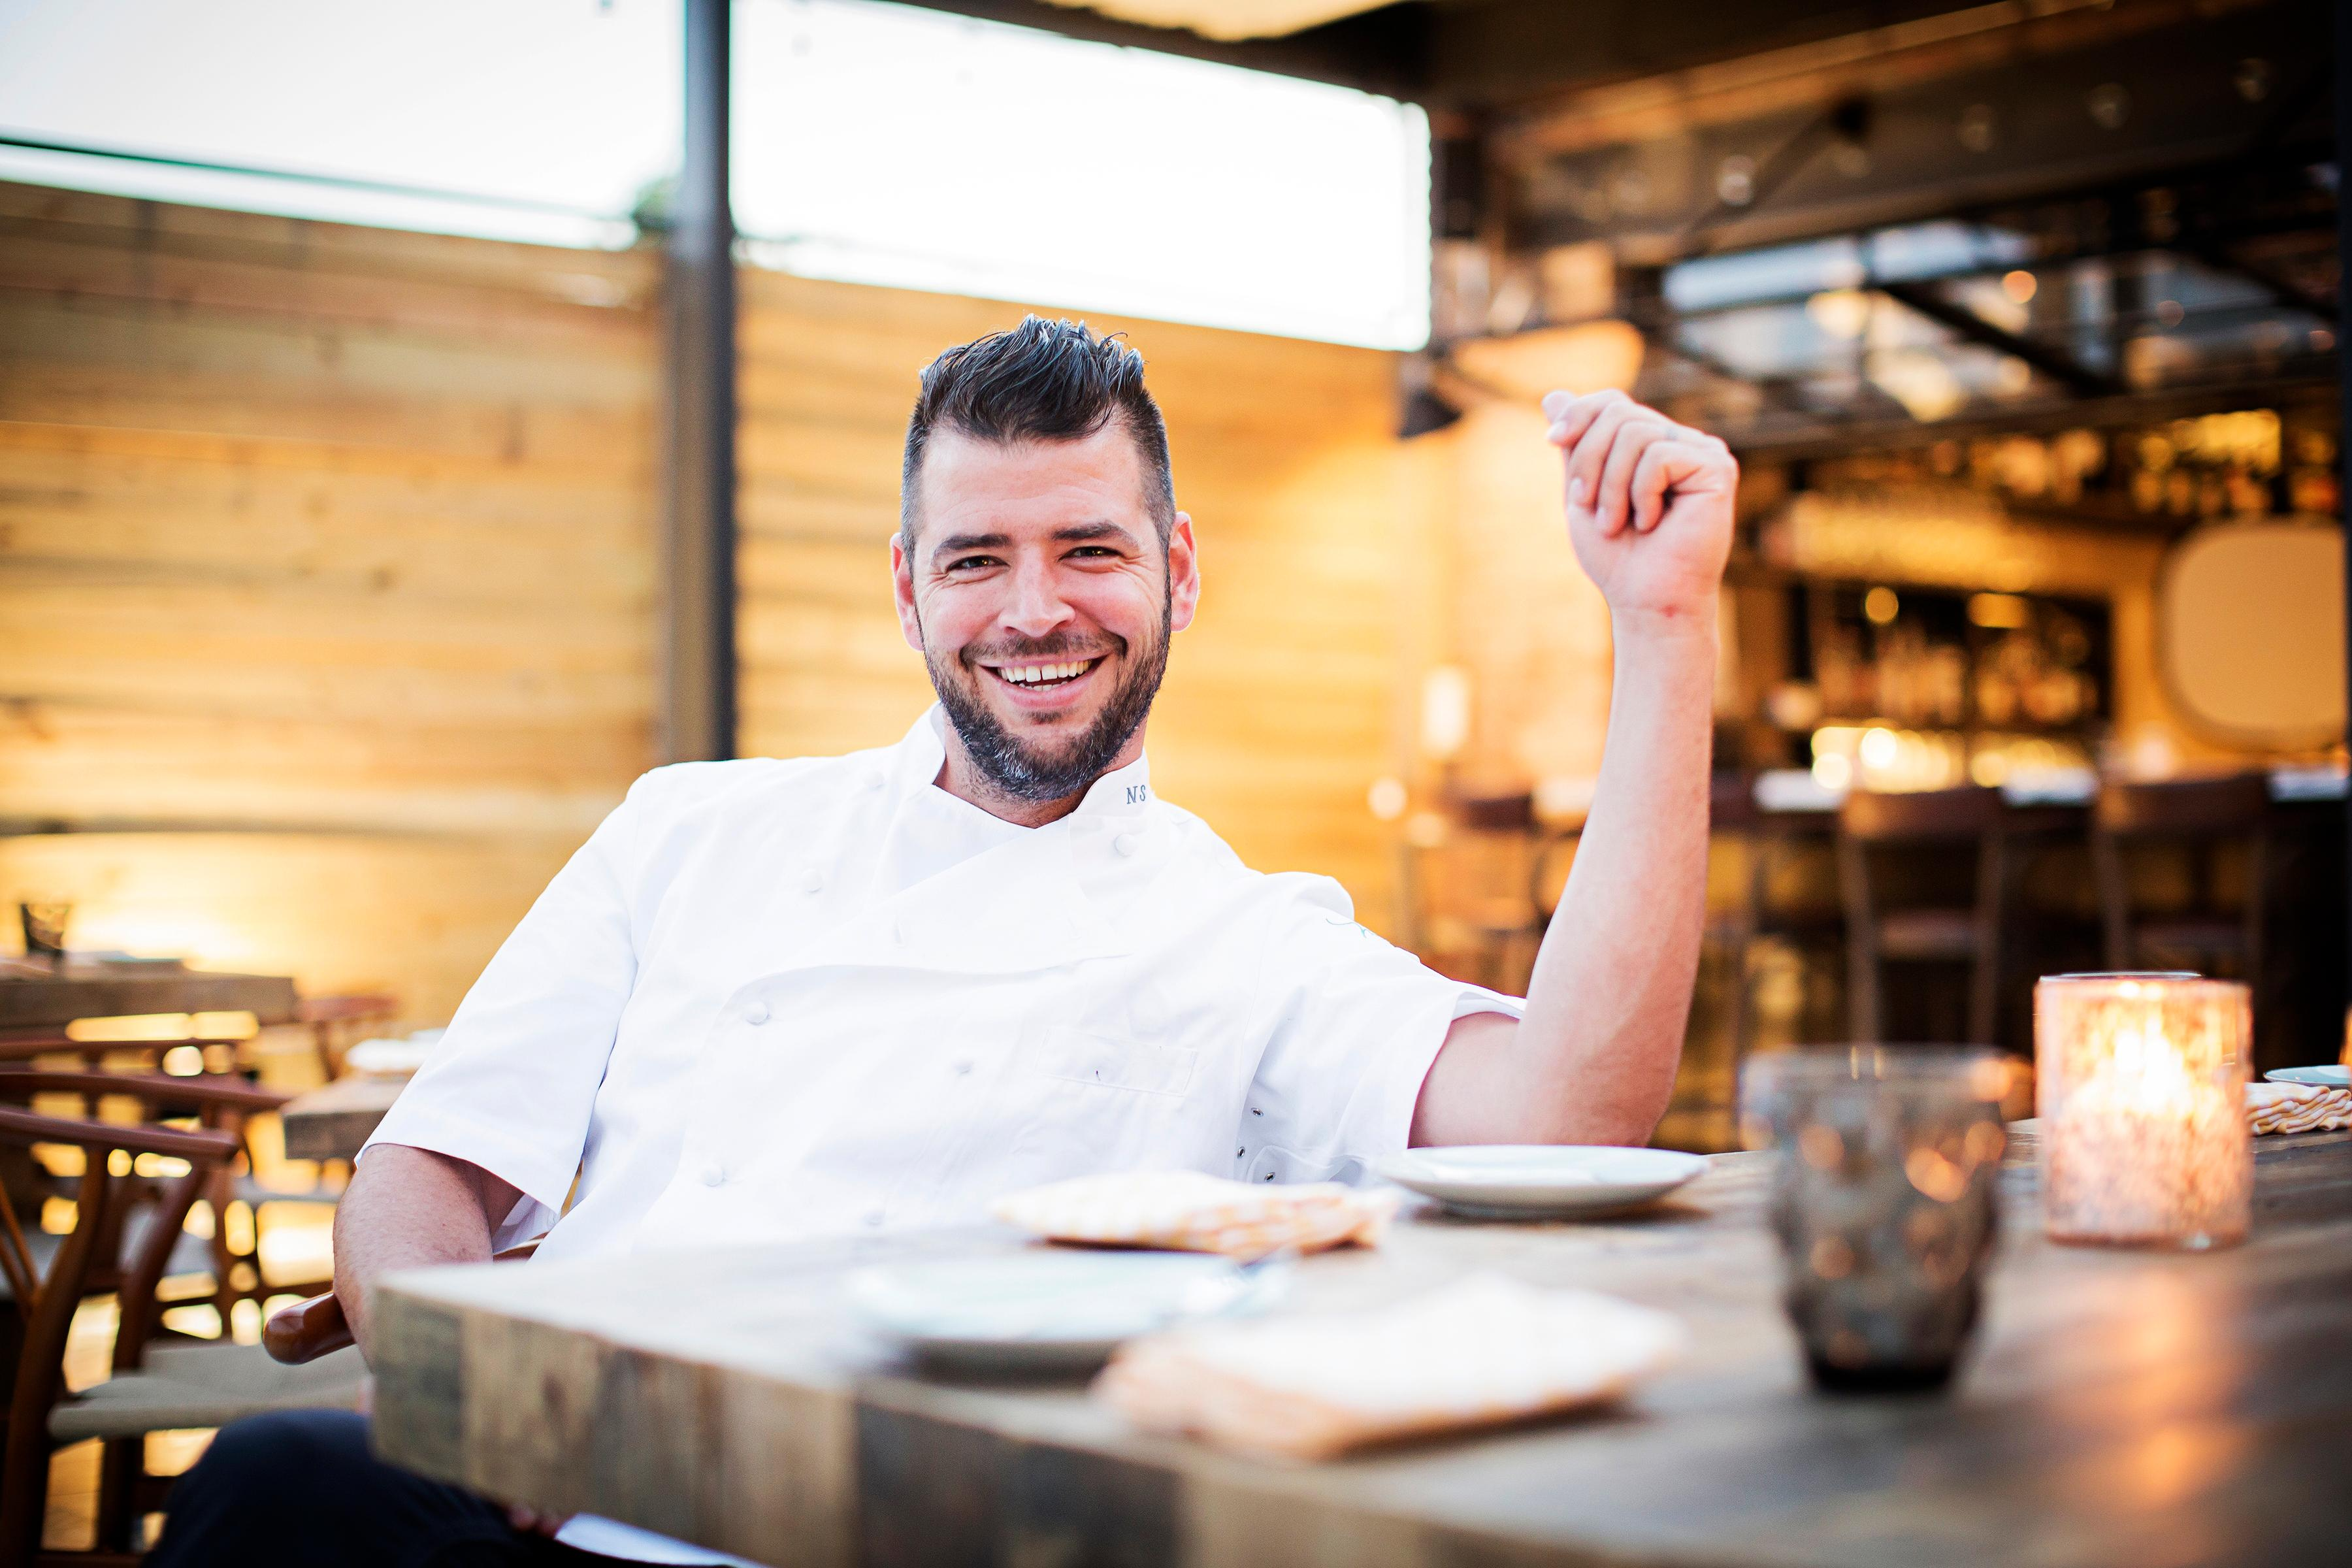 Nicholas Stefanelli is a finalist for Chef of the Year. (Image: Scott Suchman)